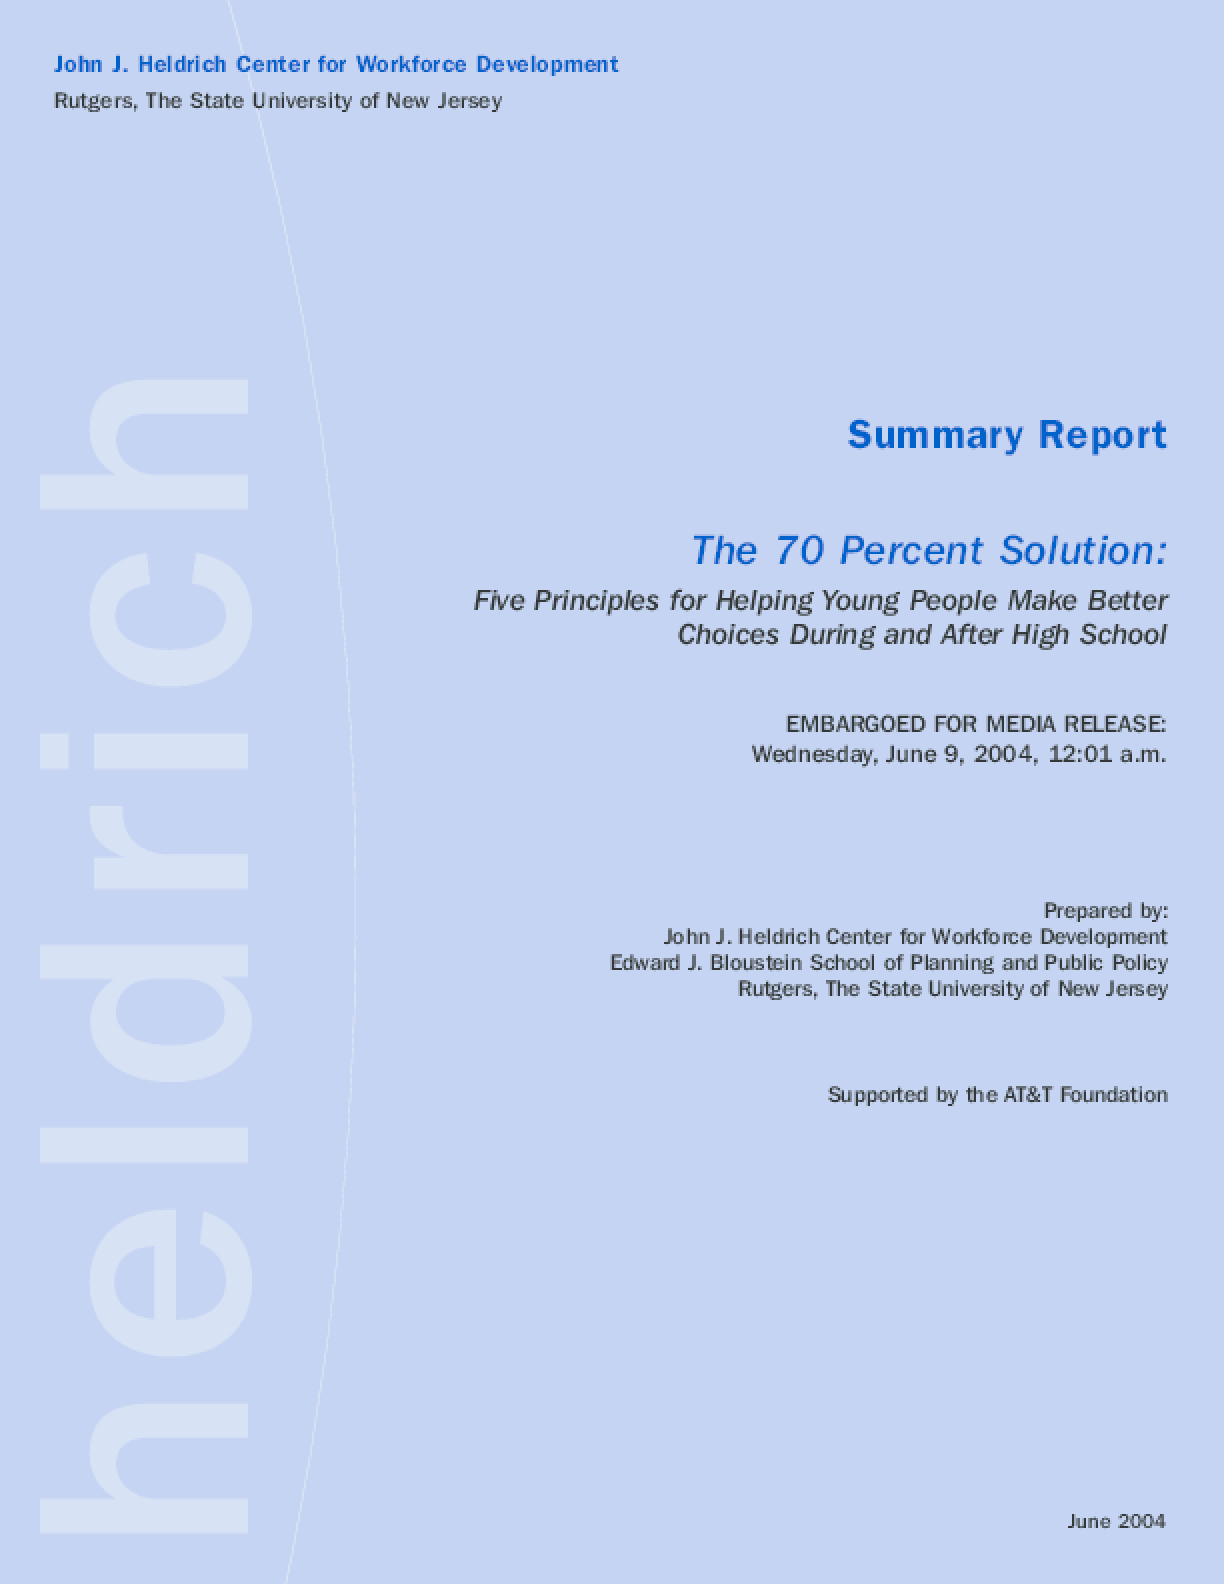 The 70 Percent Solution Summary Report